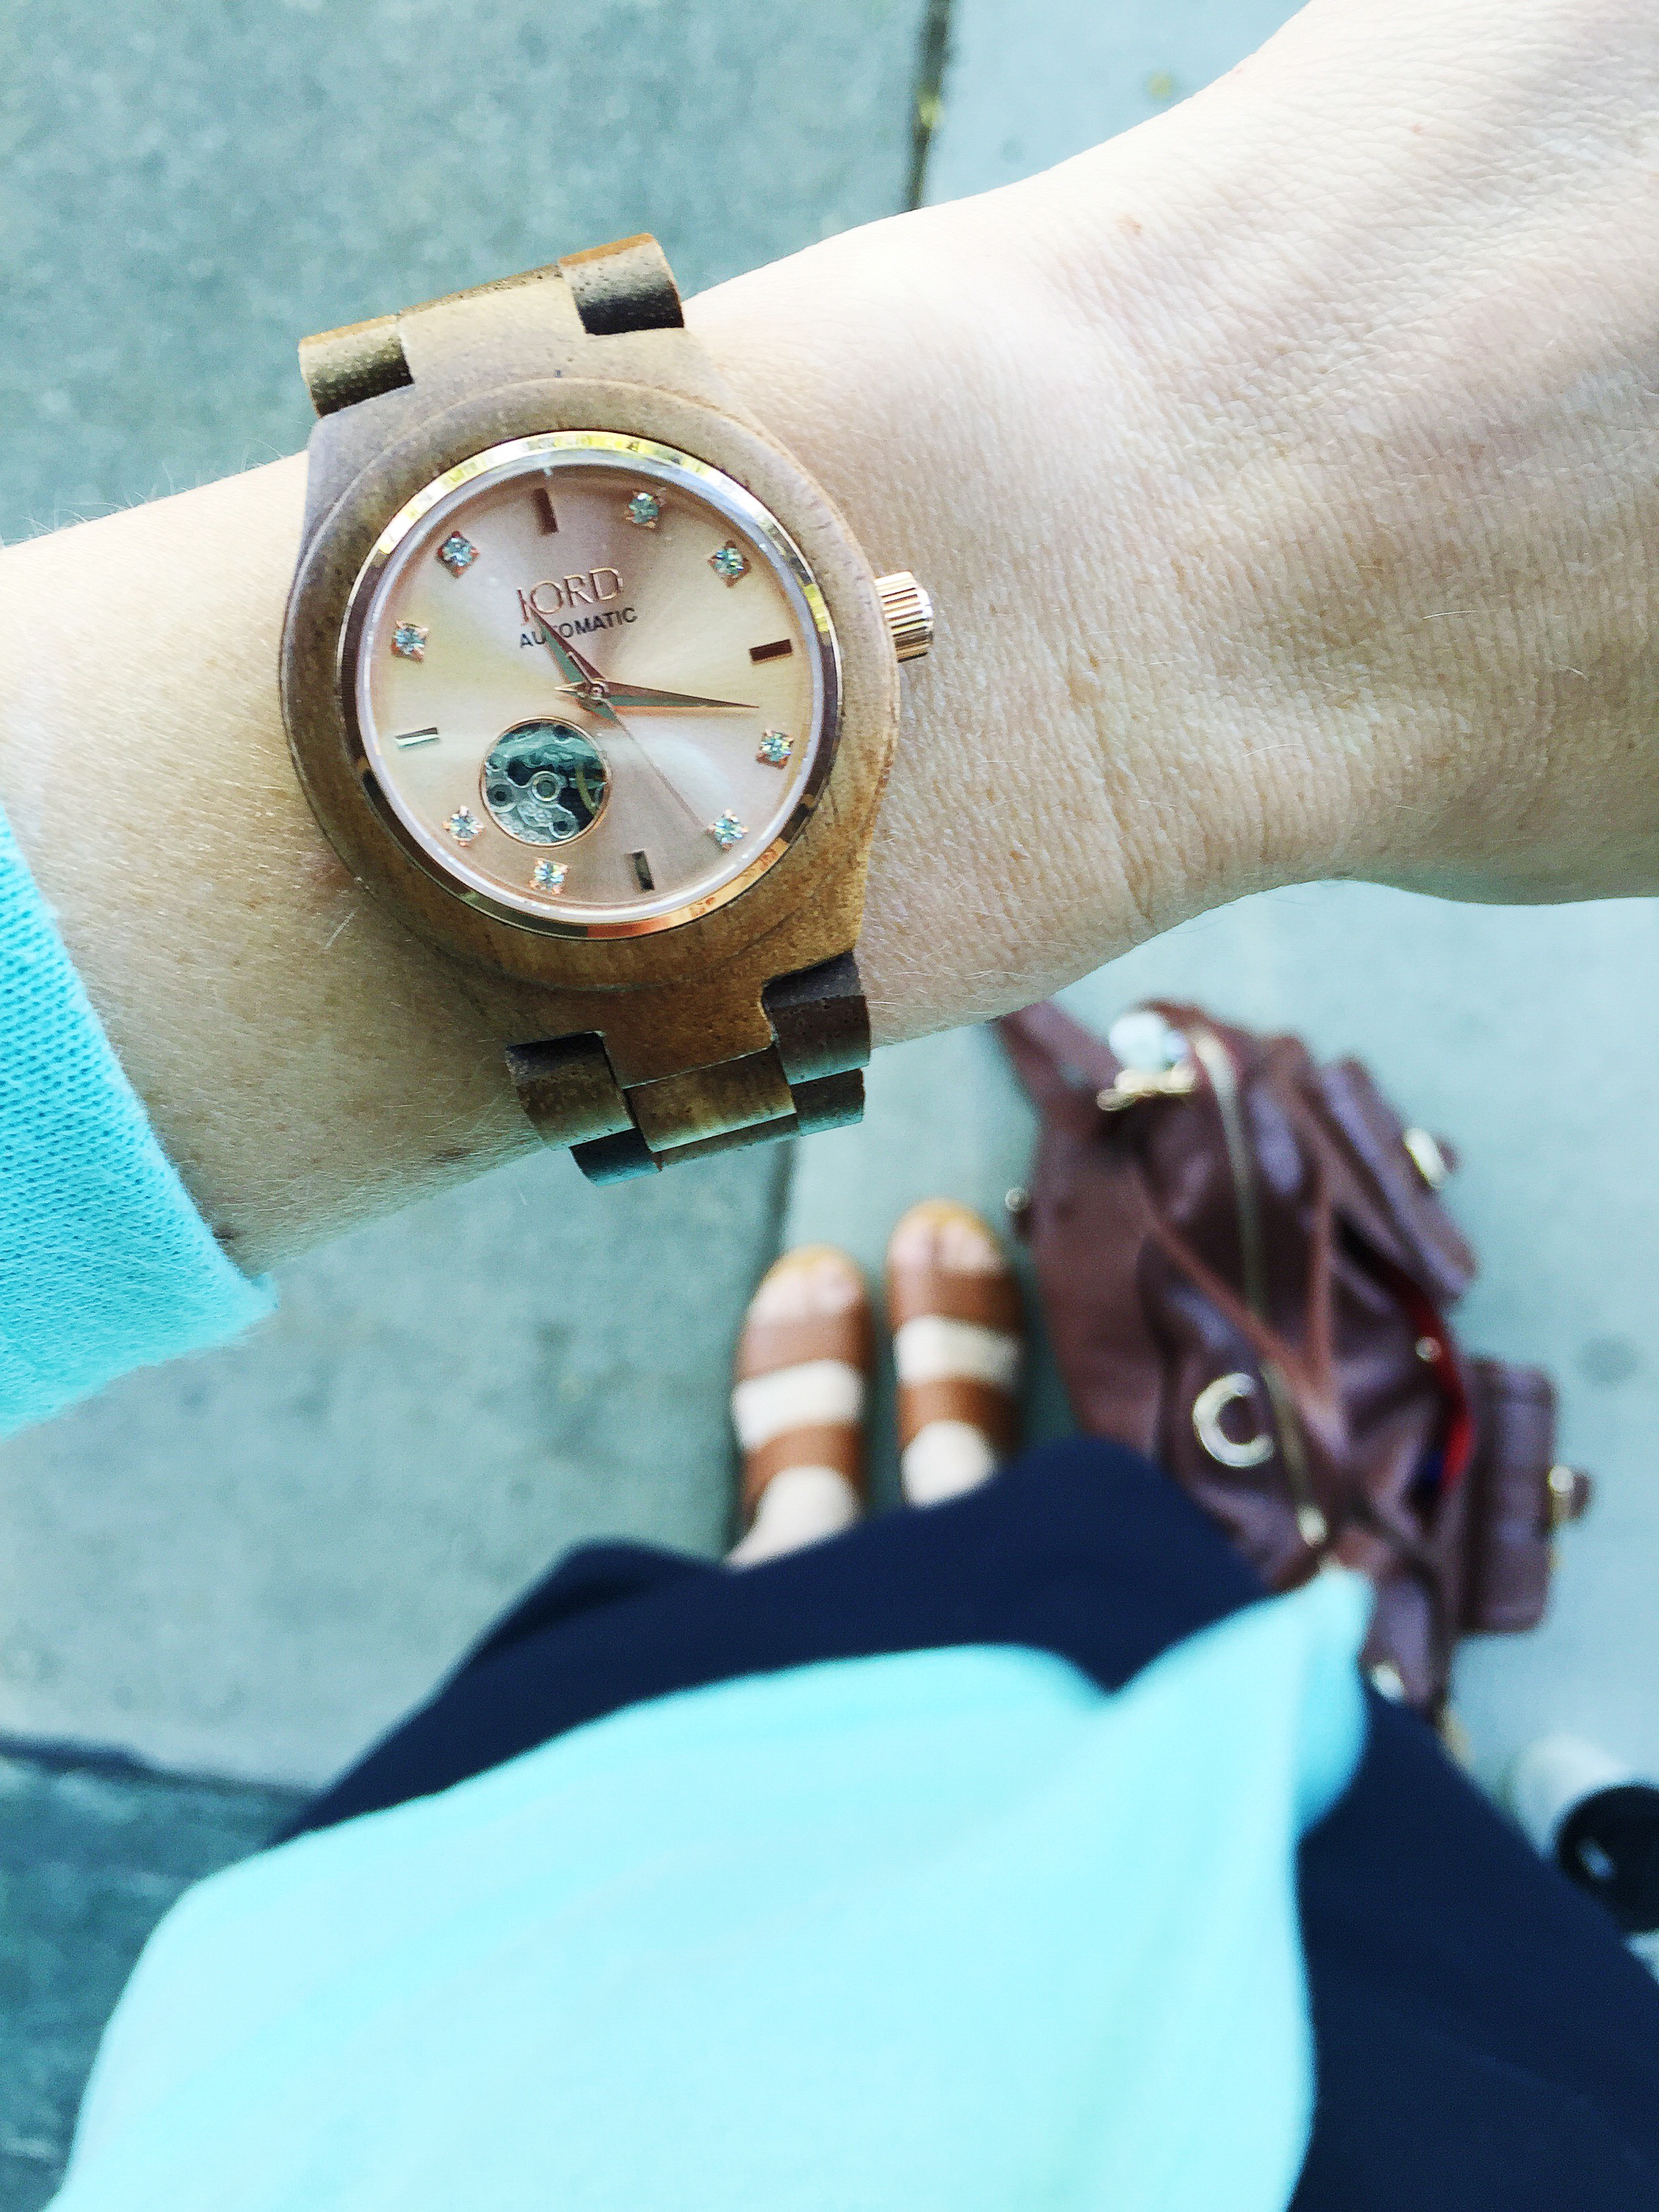 the beauty of wood / wood watches by JORD